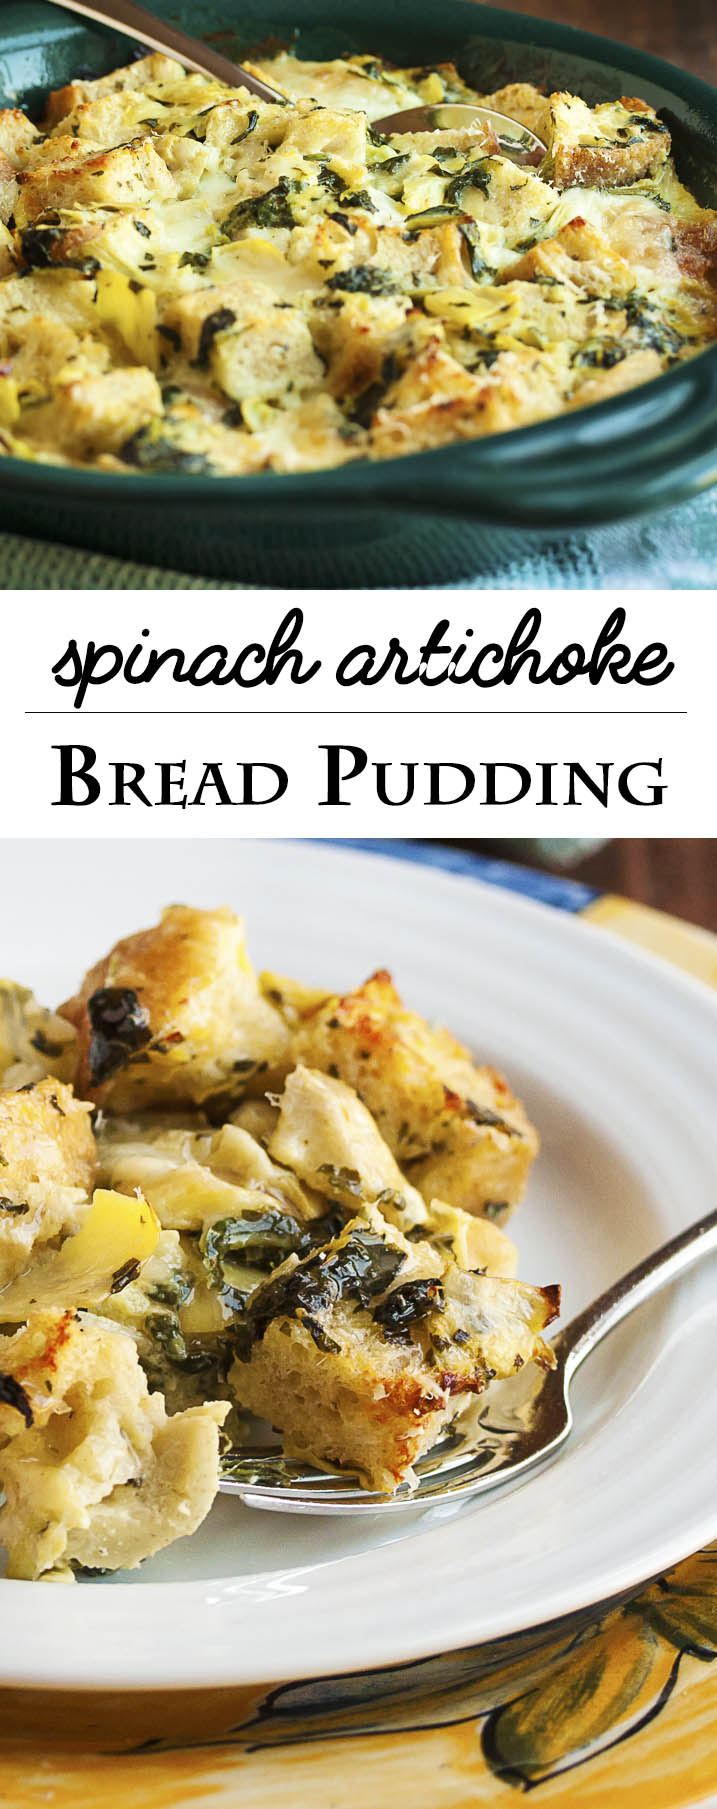 Spinach Artichoke Bread Pudding - This creamy, cheesy bread pudding full of diced artichokes and chopped spinach is the perfect way to use up that stale bread in your cupboard and turn it into a yummy, flavor-packed side dish. | justalittlebitofbacon.com